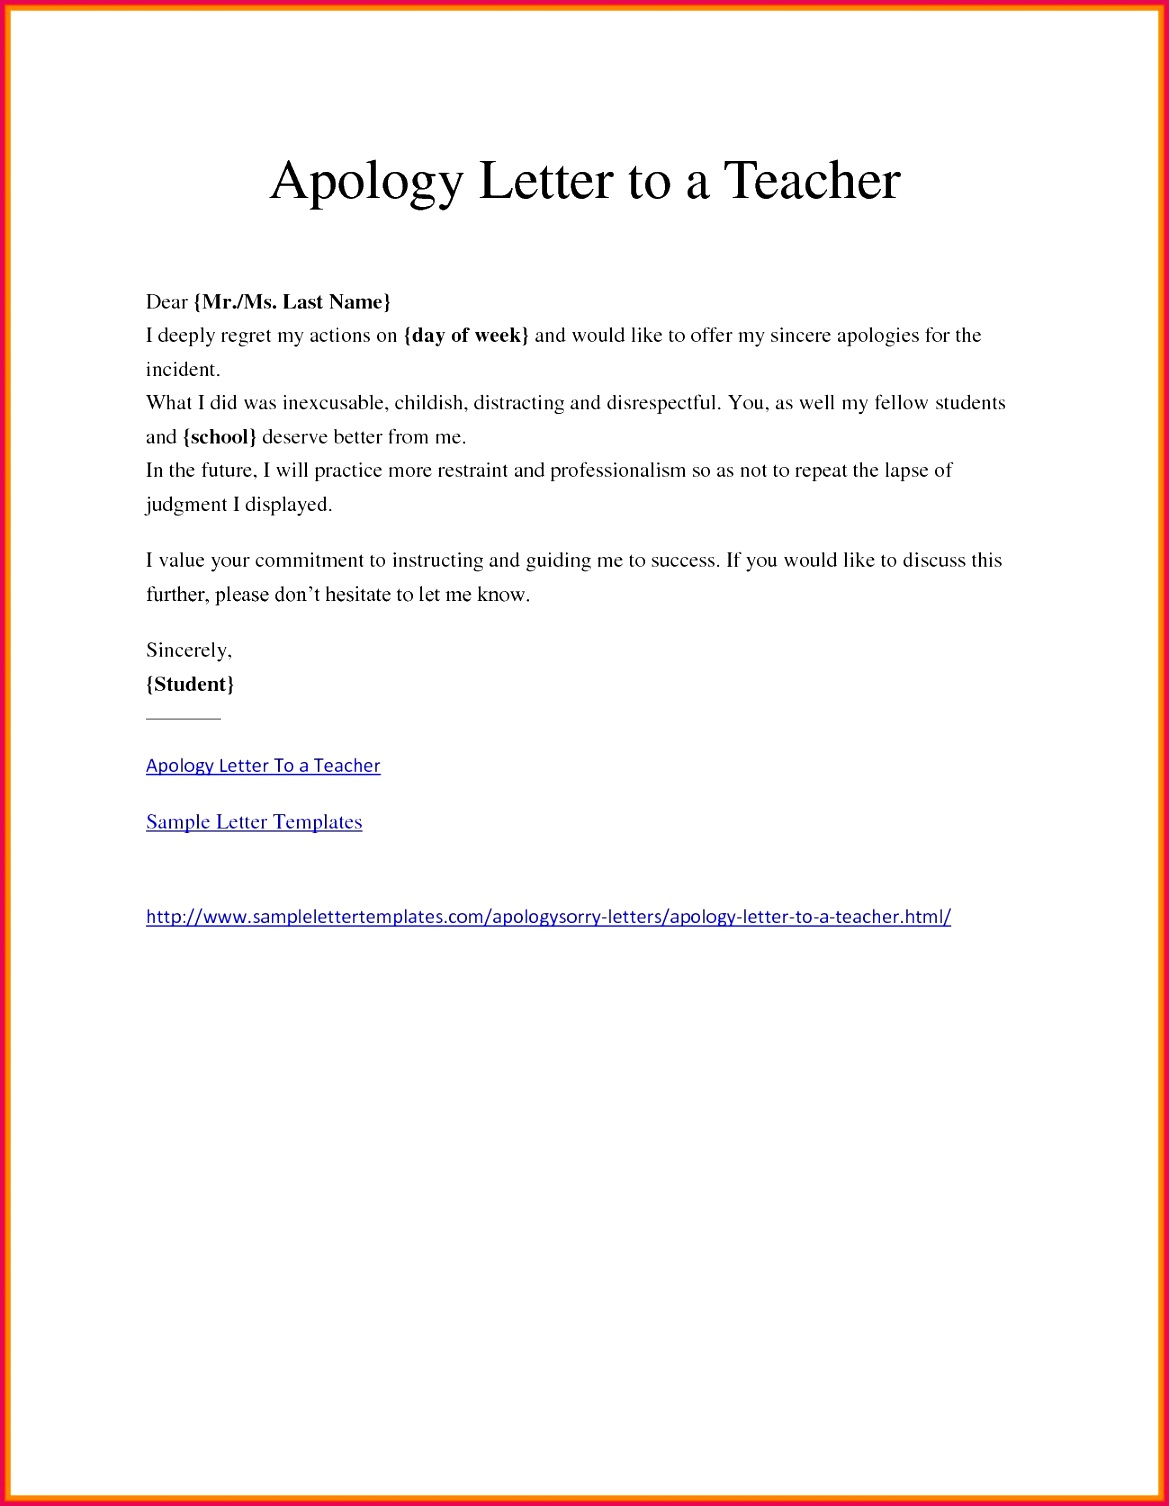 Customer Service Apology Letter New Template for Apology Letter Valid sincere Apology Letter Full See